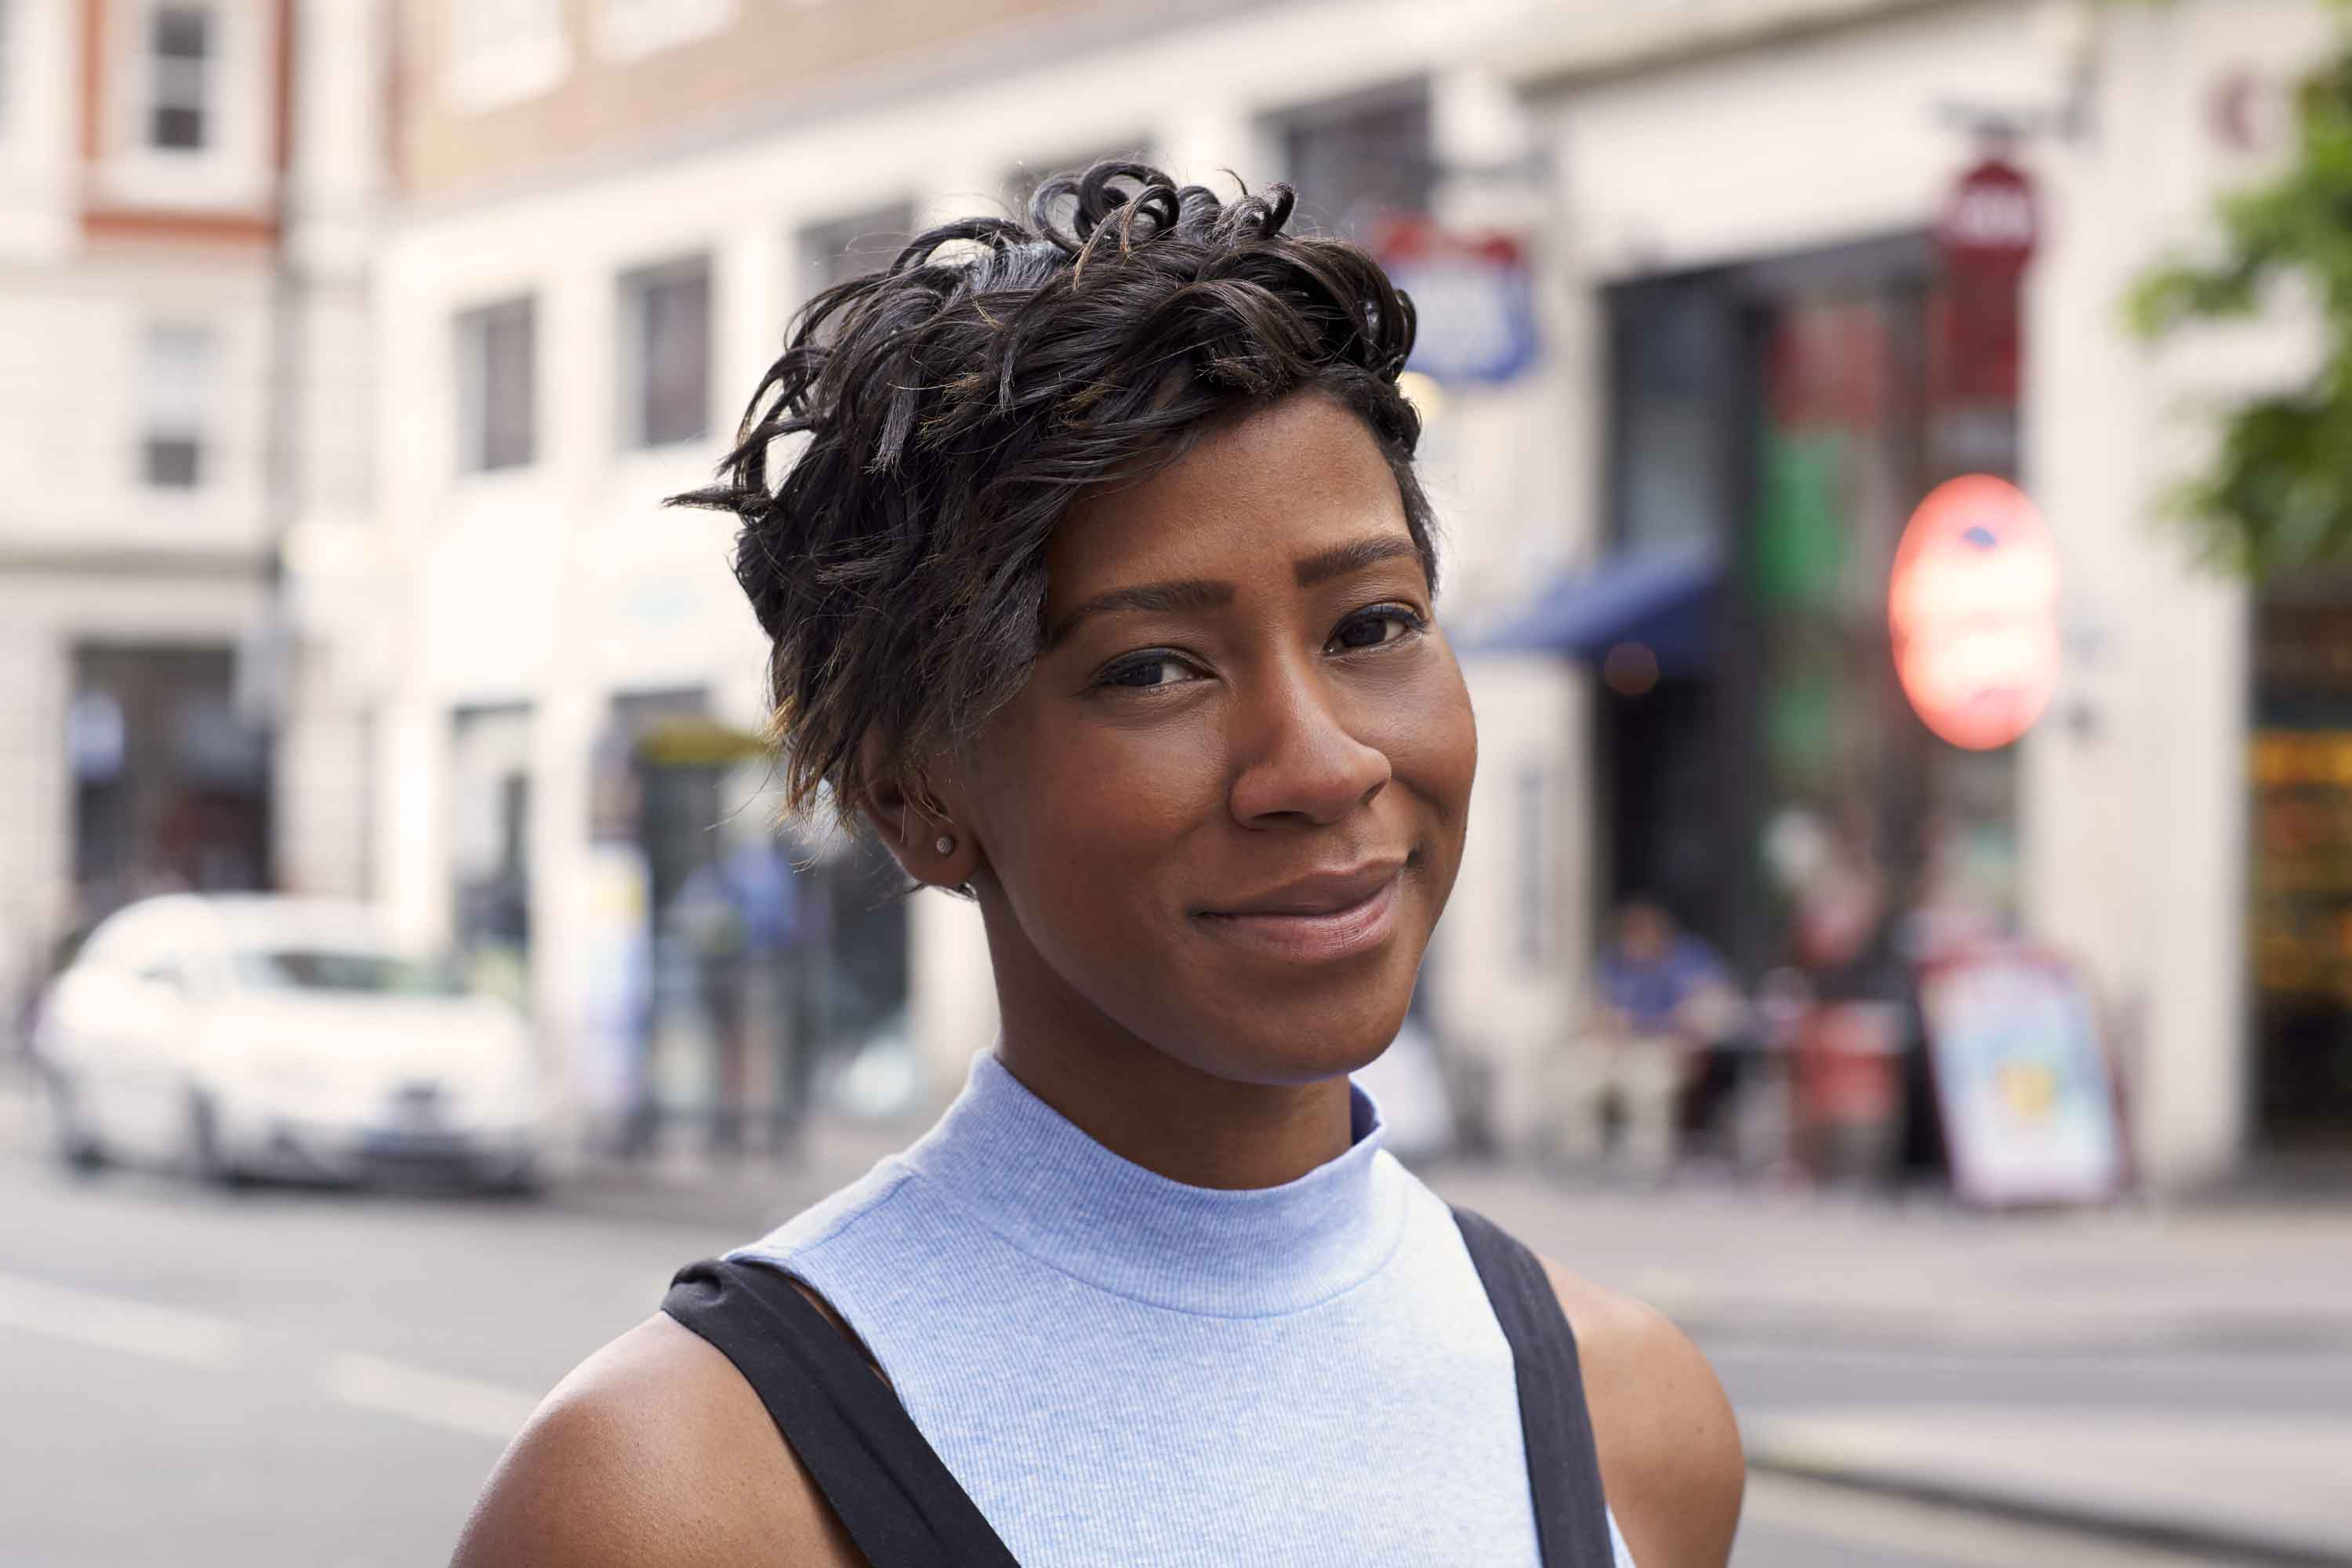 funky short hairstyles as shown by street style model with black curled hair